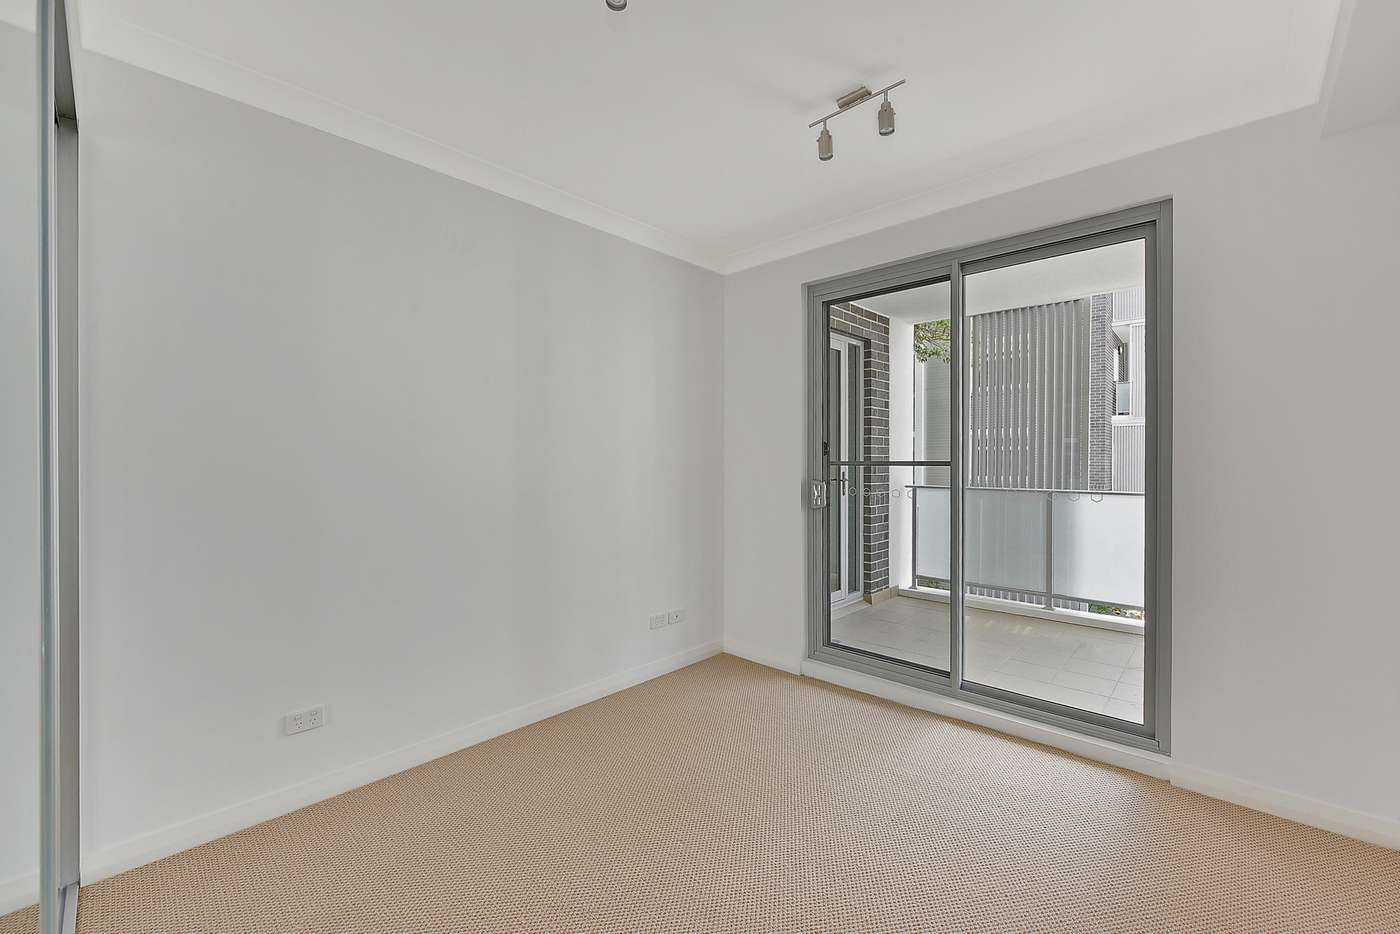 Sixth view of Homely apartment listing, 61/212-216 Mona Vale Road, St Ives NSW 2075